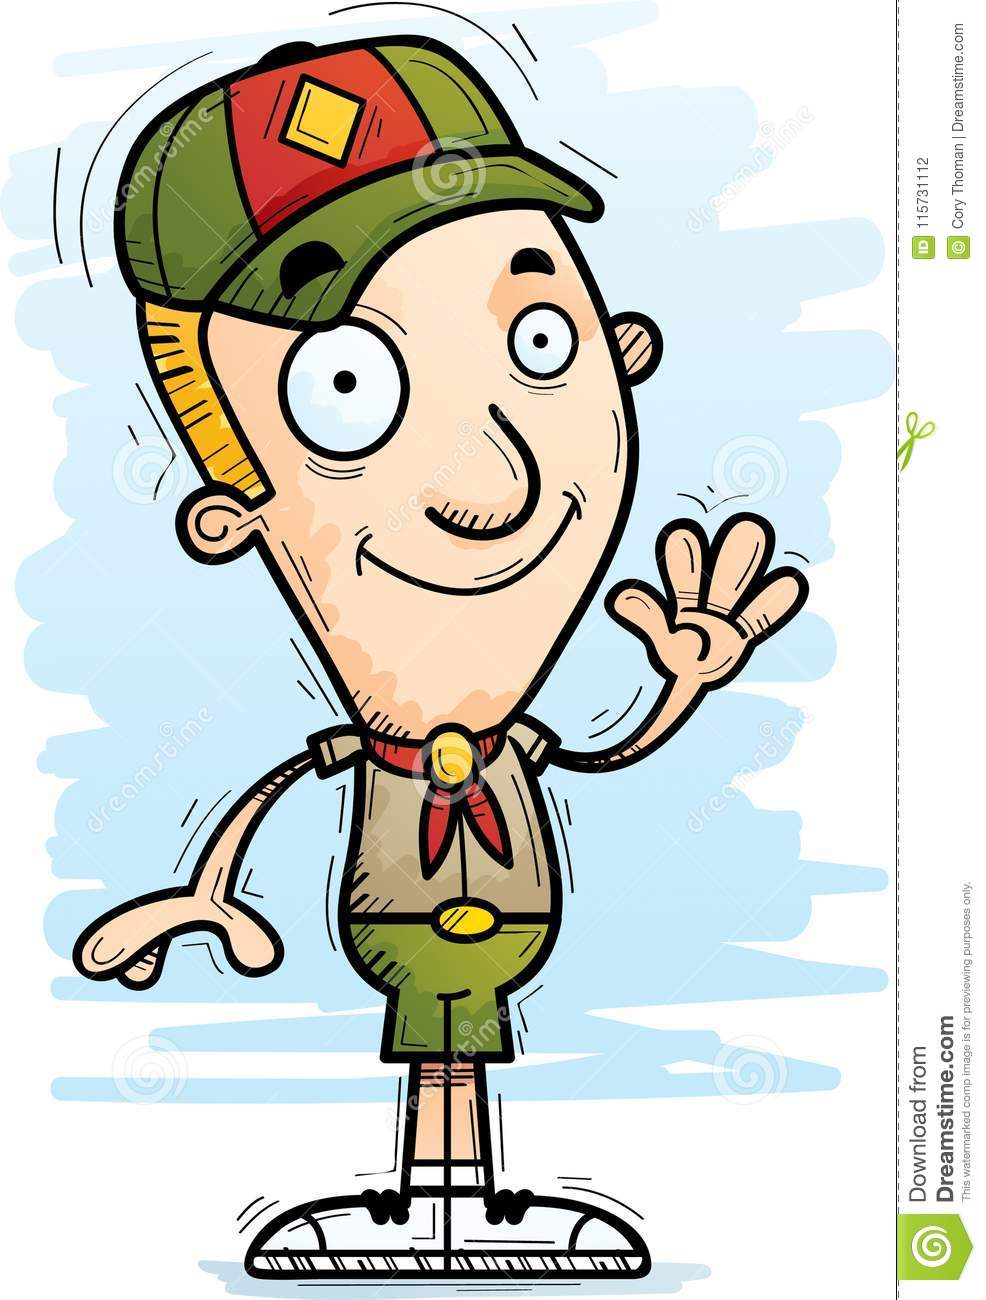 hight resolution of download cartoon boy scout waving stock vector illustration of clipart 115731112